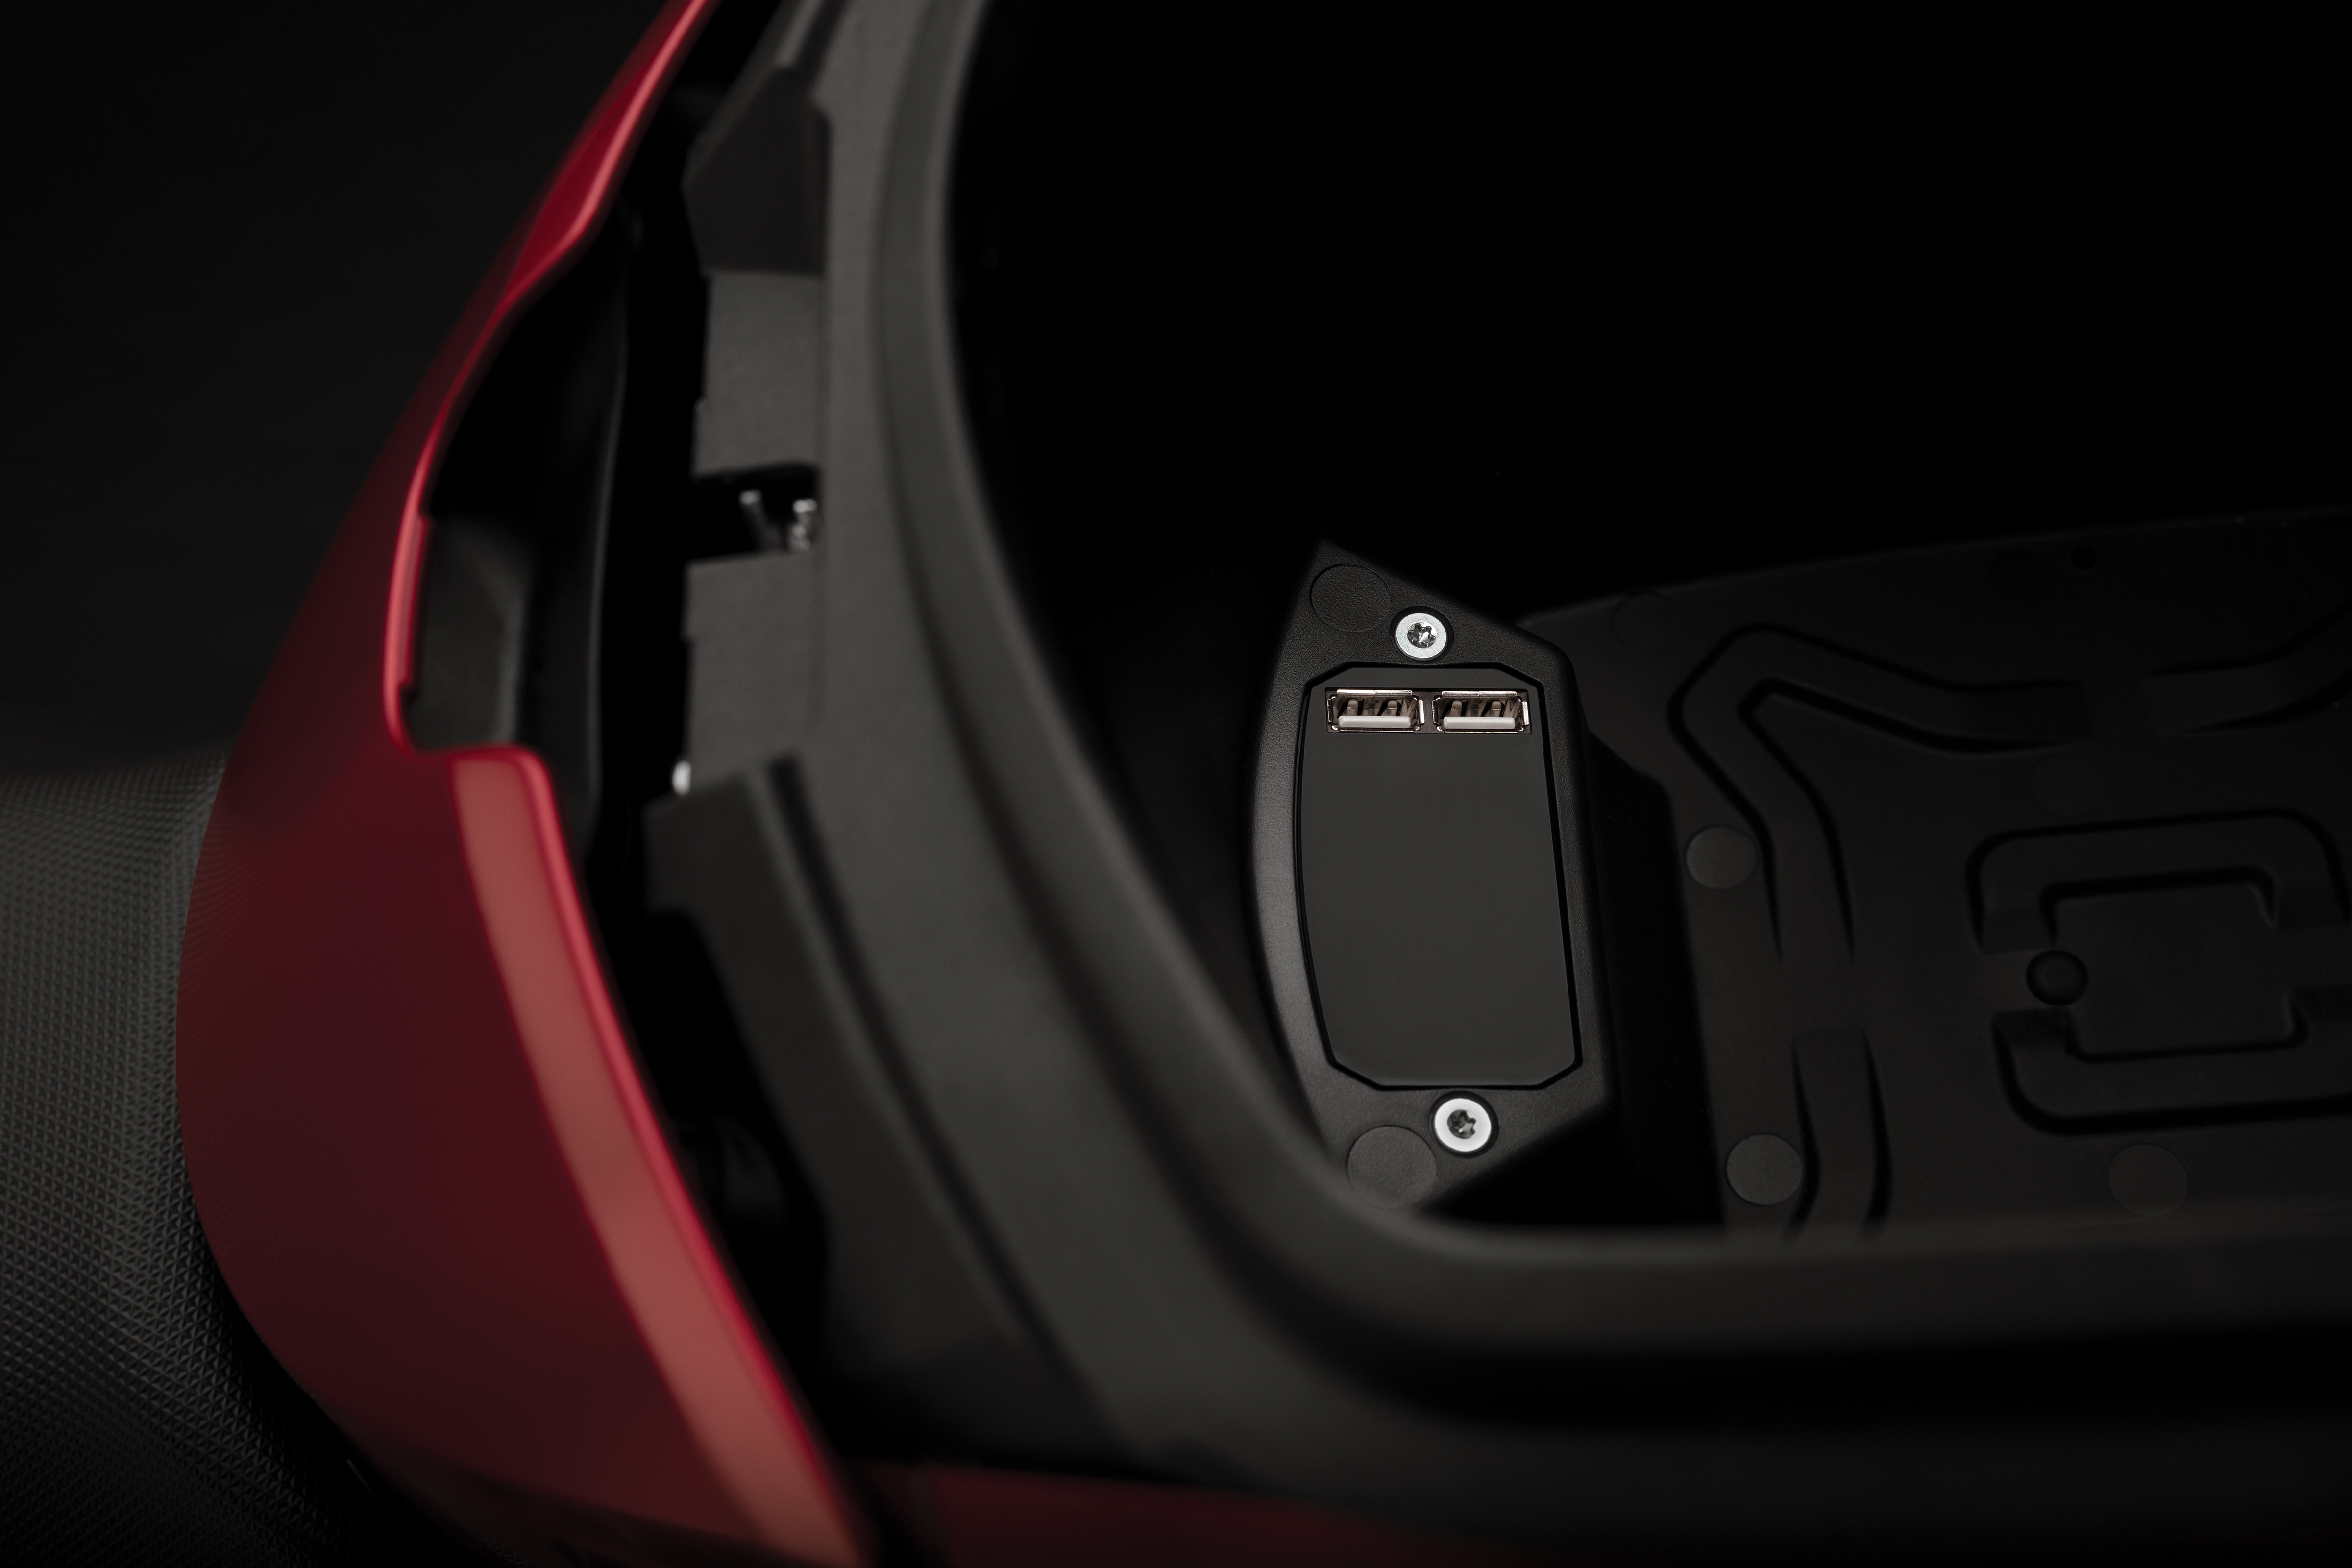 2020 Zero SR/F Electric Motorcycle: USB Port